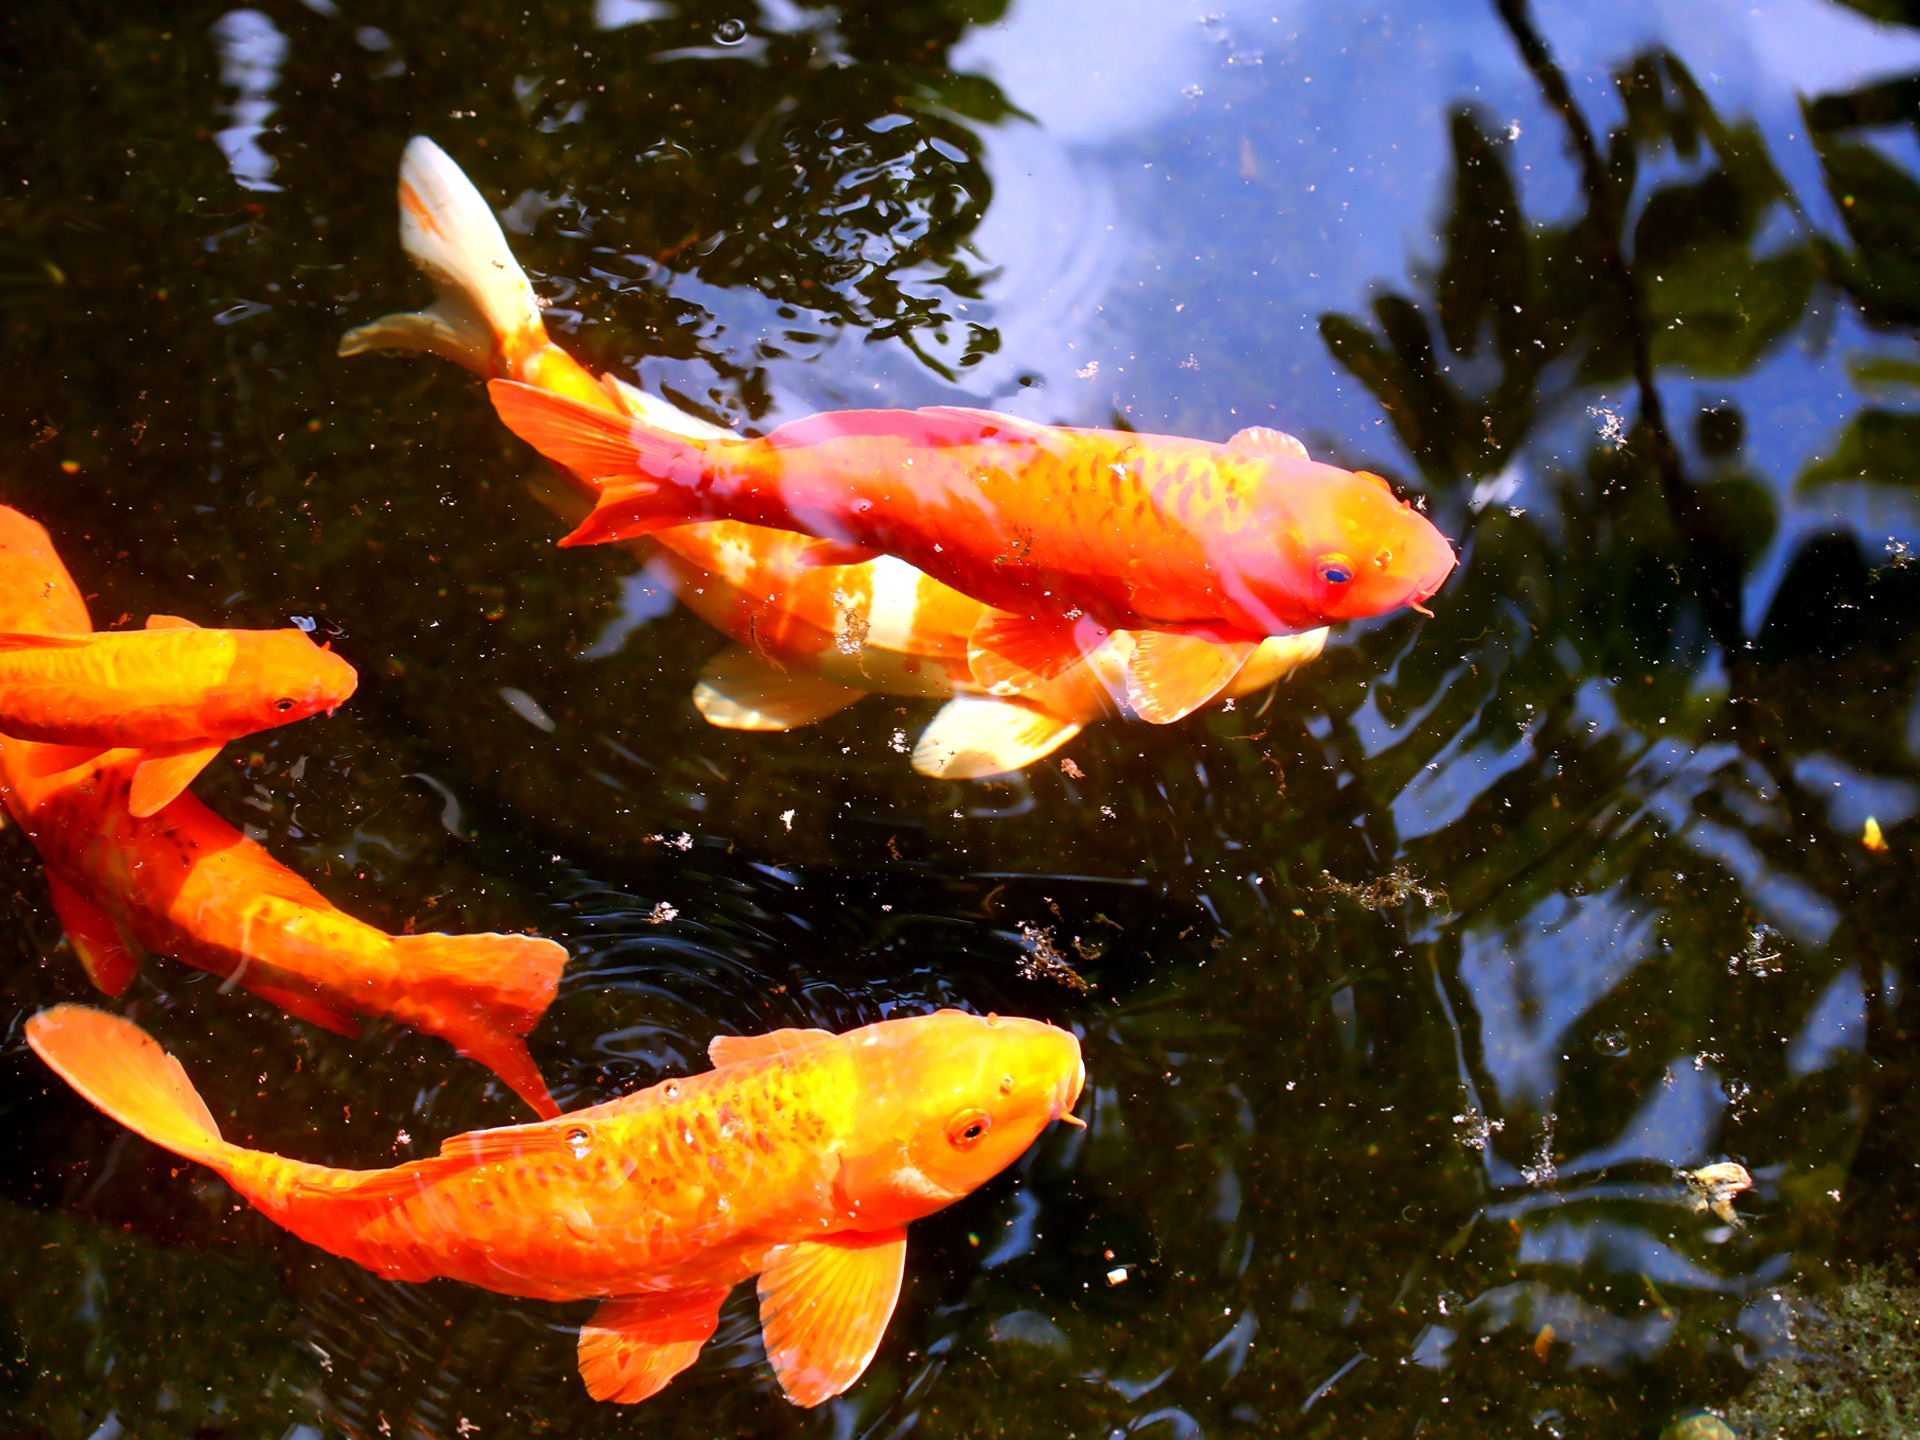 Hd koi fish wallpaper wallpapersafari for Pictures of coy fish